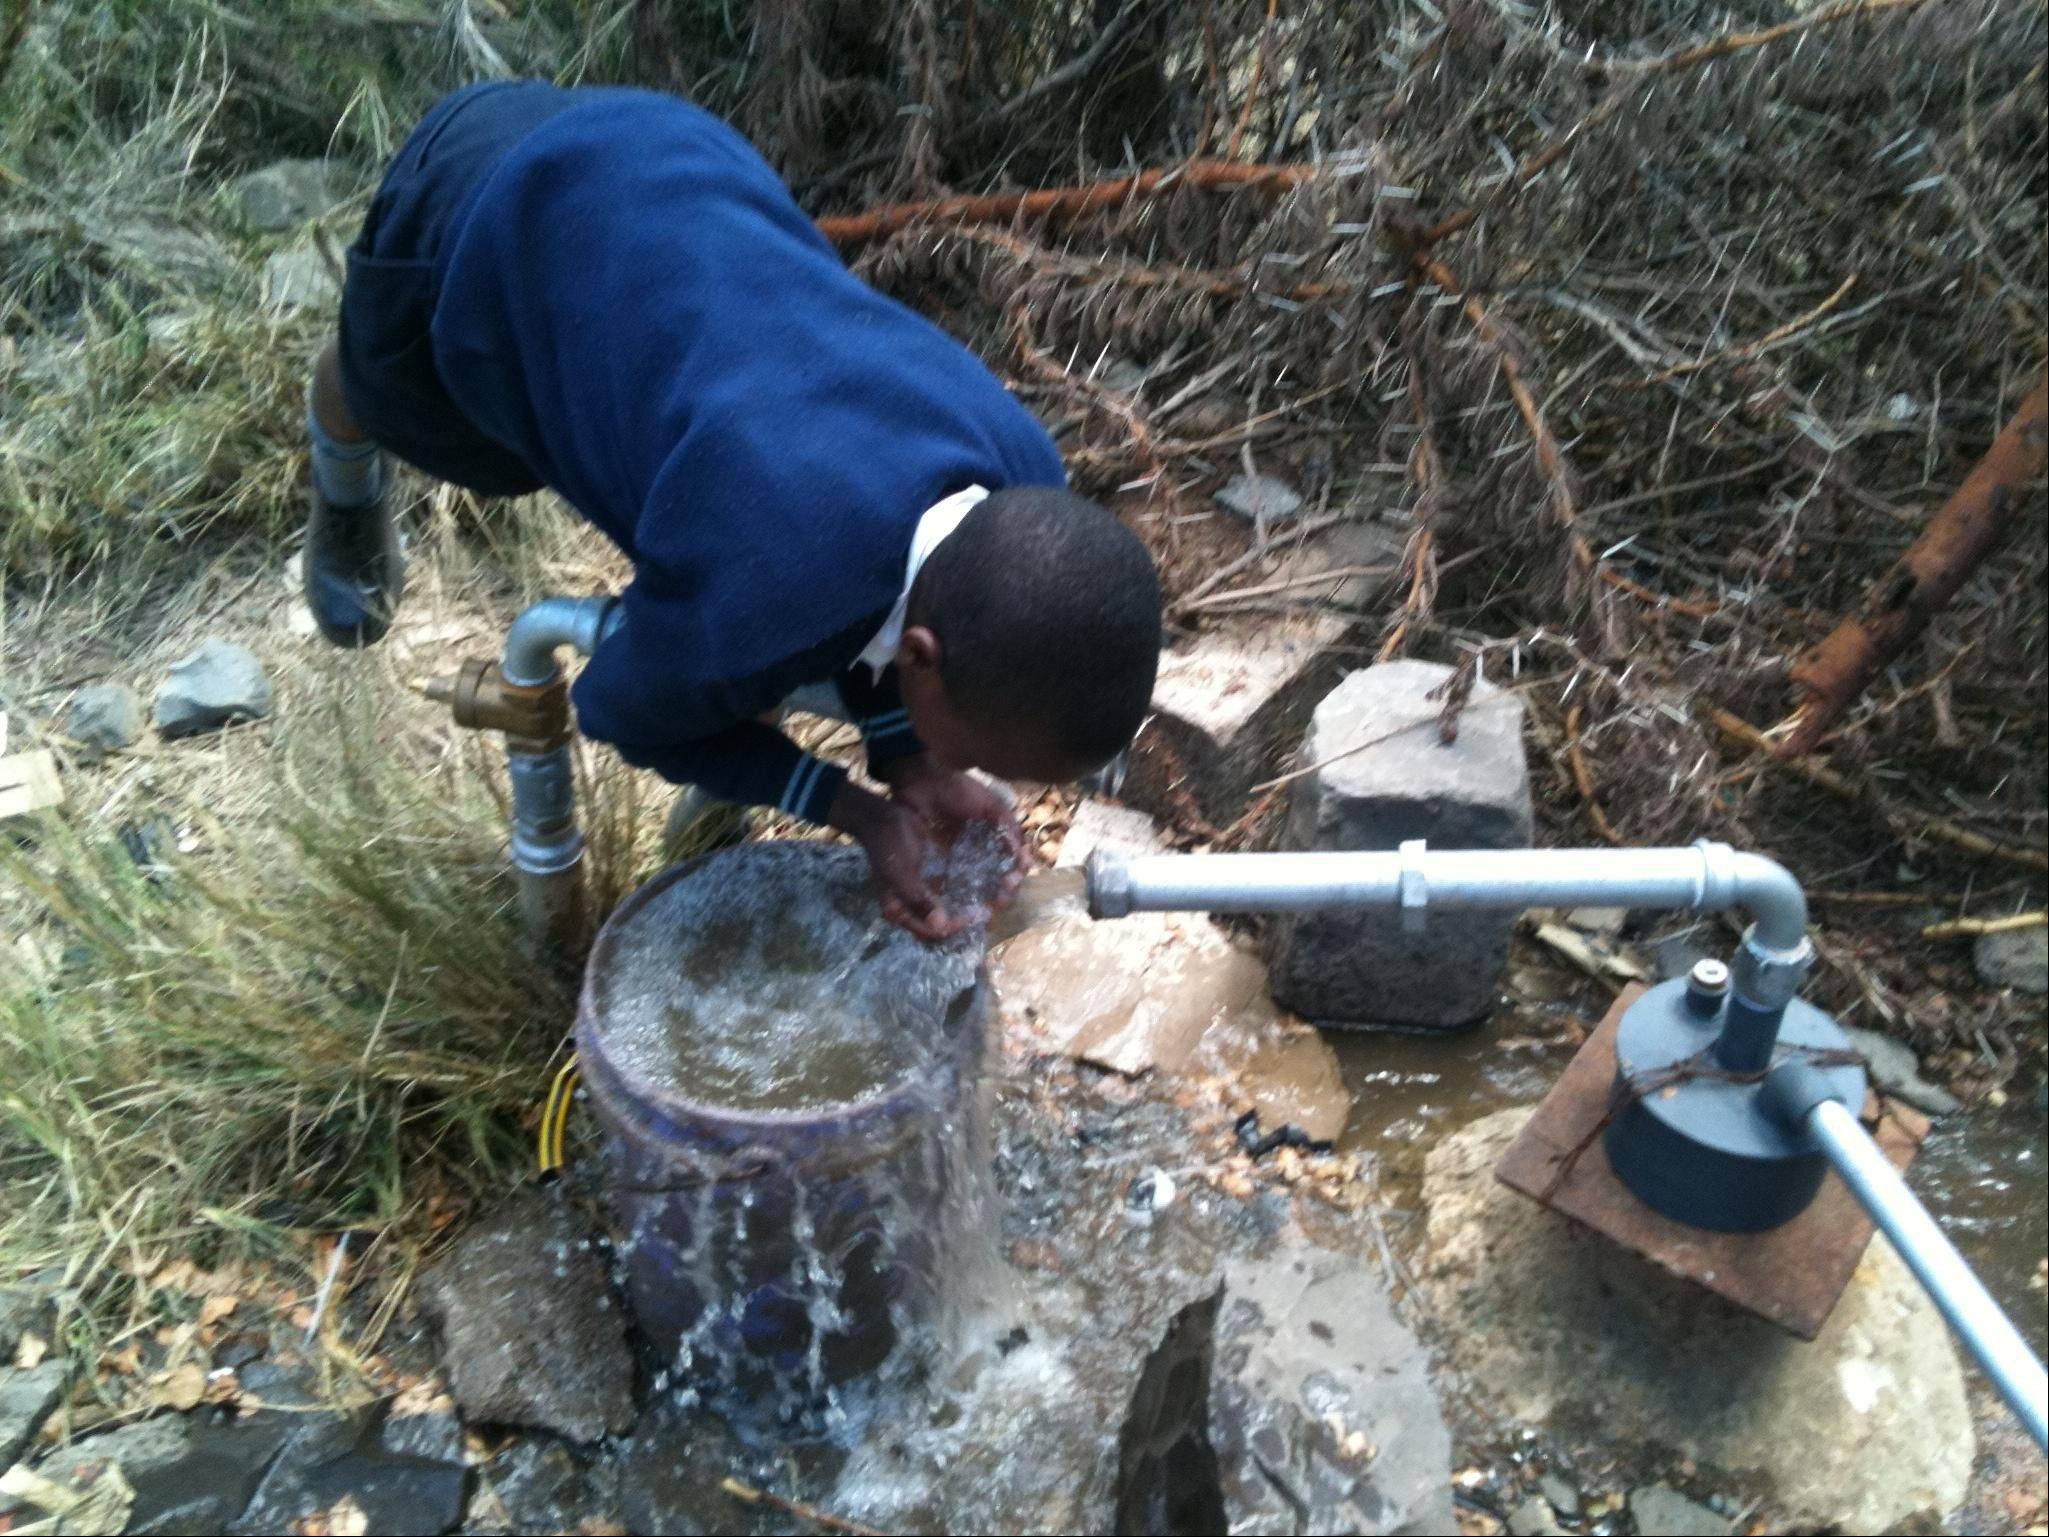 After Aliya de Grazia of Long Grove started volunteering at a Catholic mission in the tiny Kenyan village of Mulot, she started a charity that built a well to provide clean water.